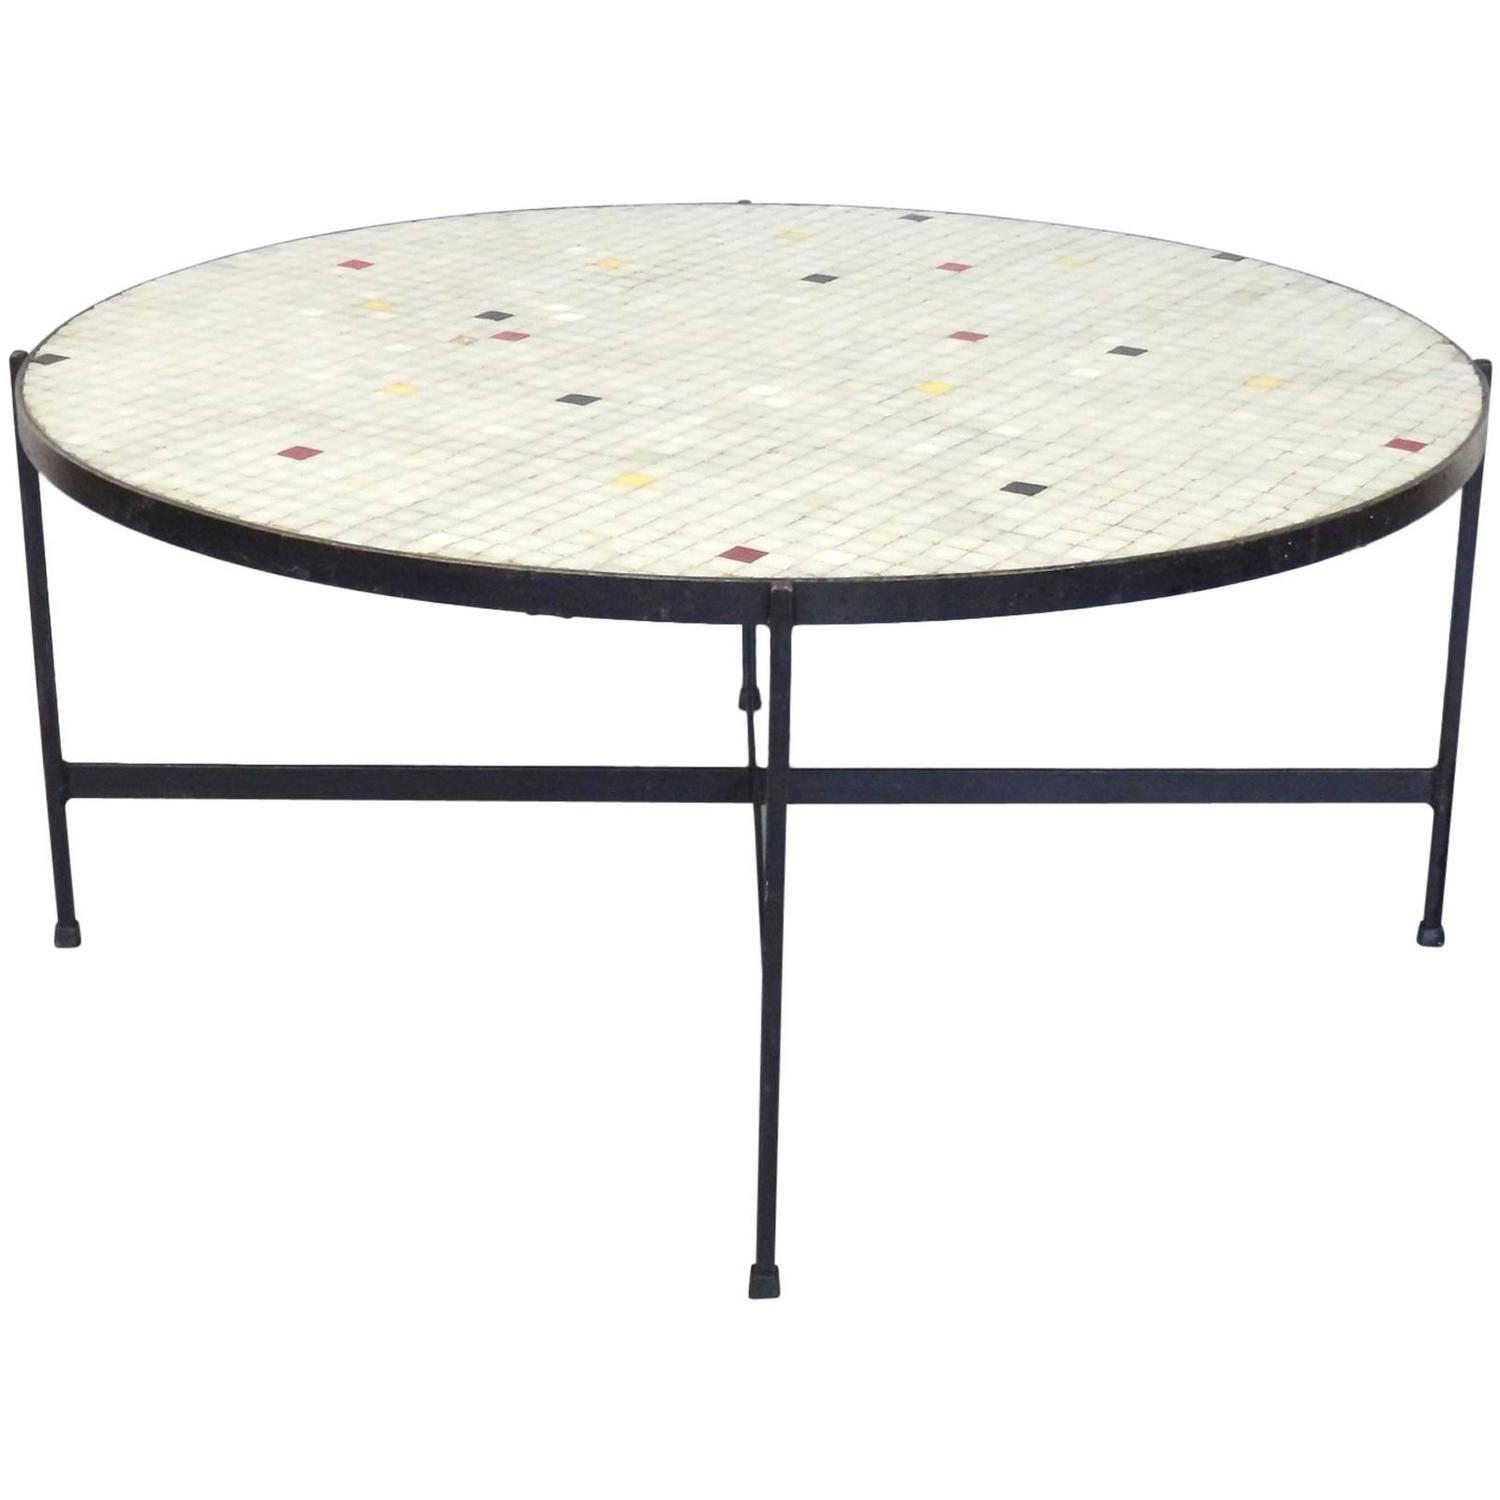 Freeform Coffee Table with Inset Quartz Top For Sale at 1stdibs